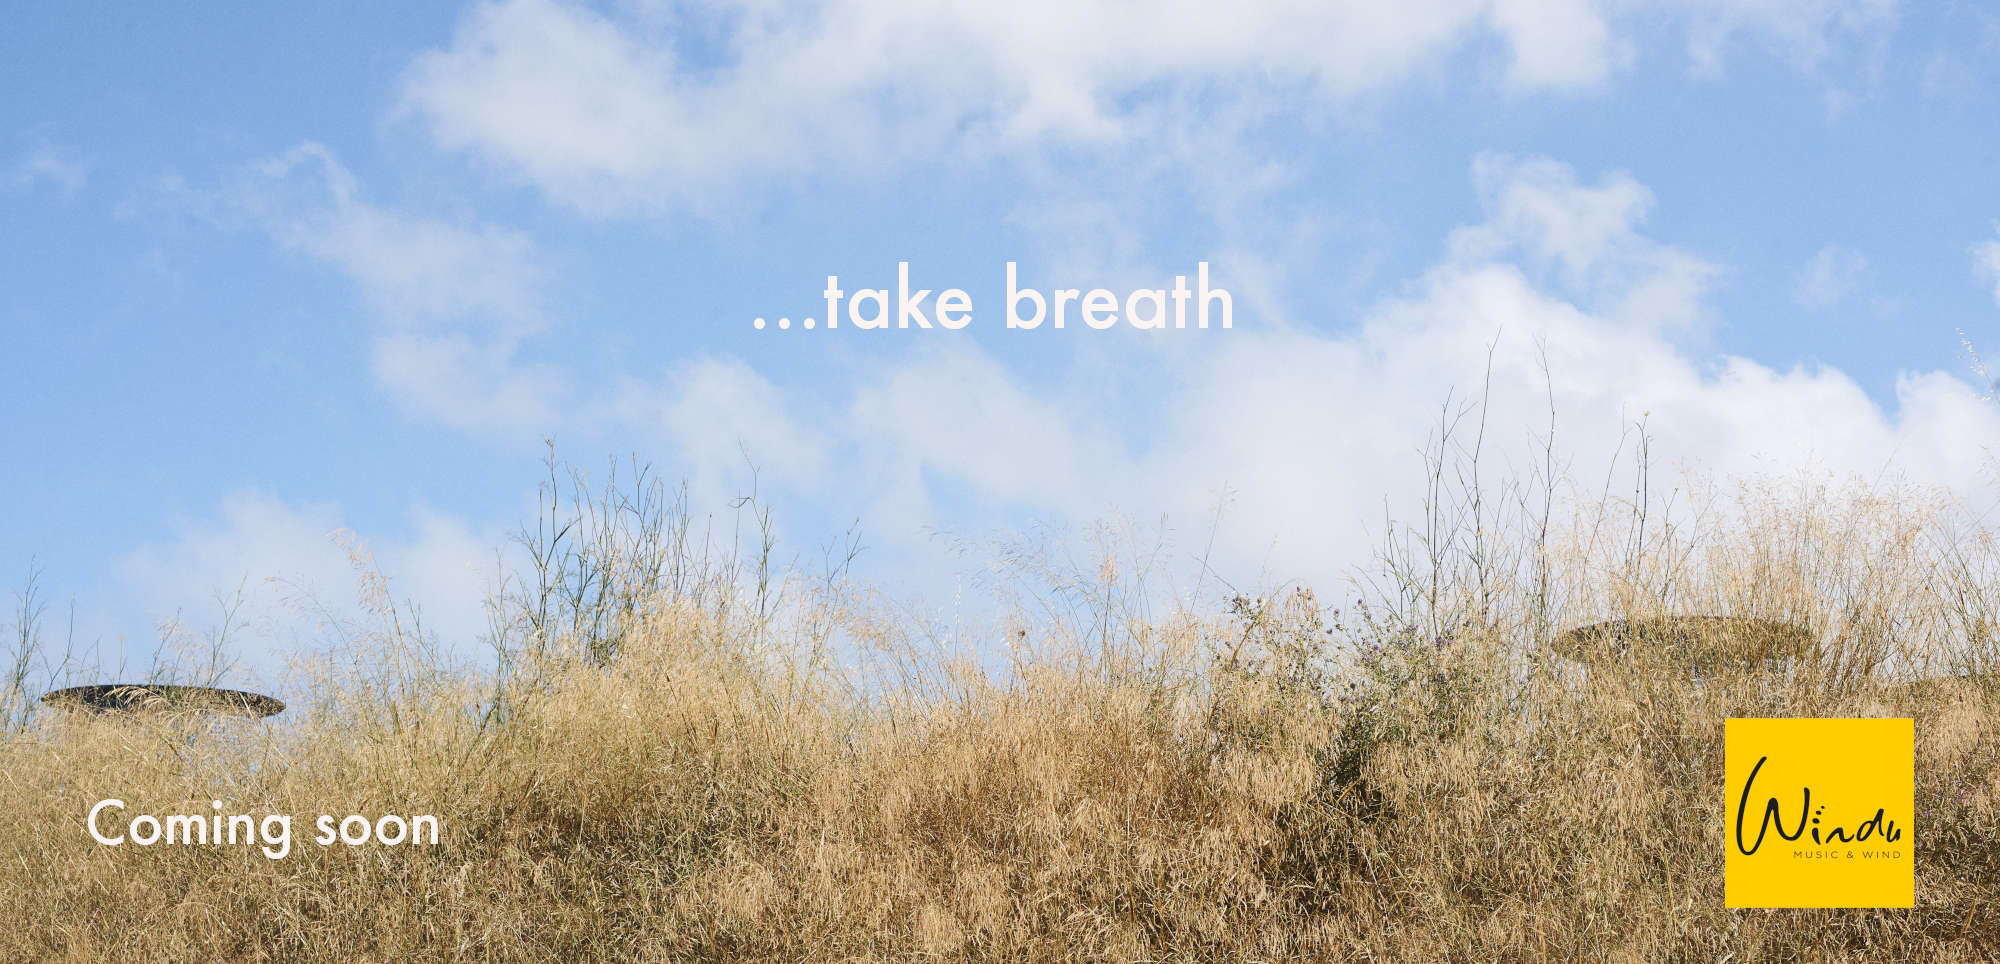 Wind Take breath